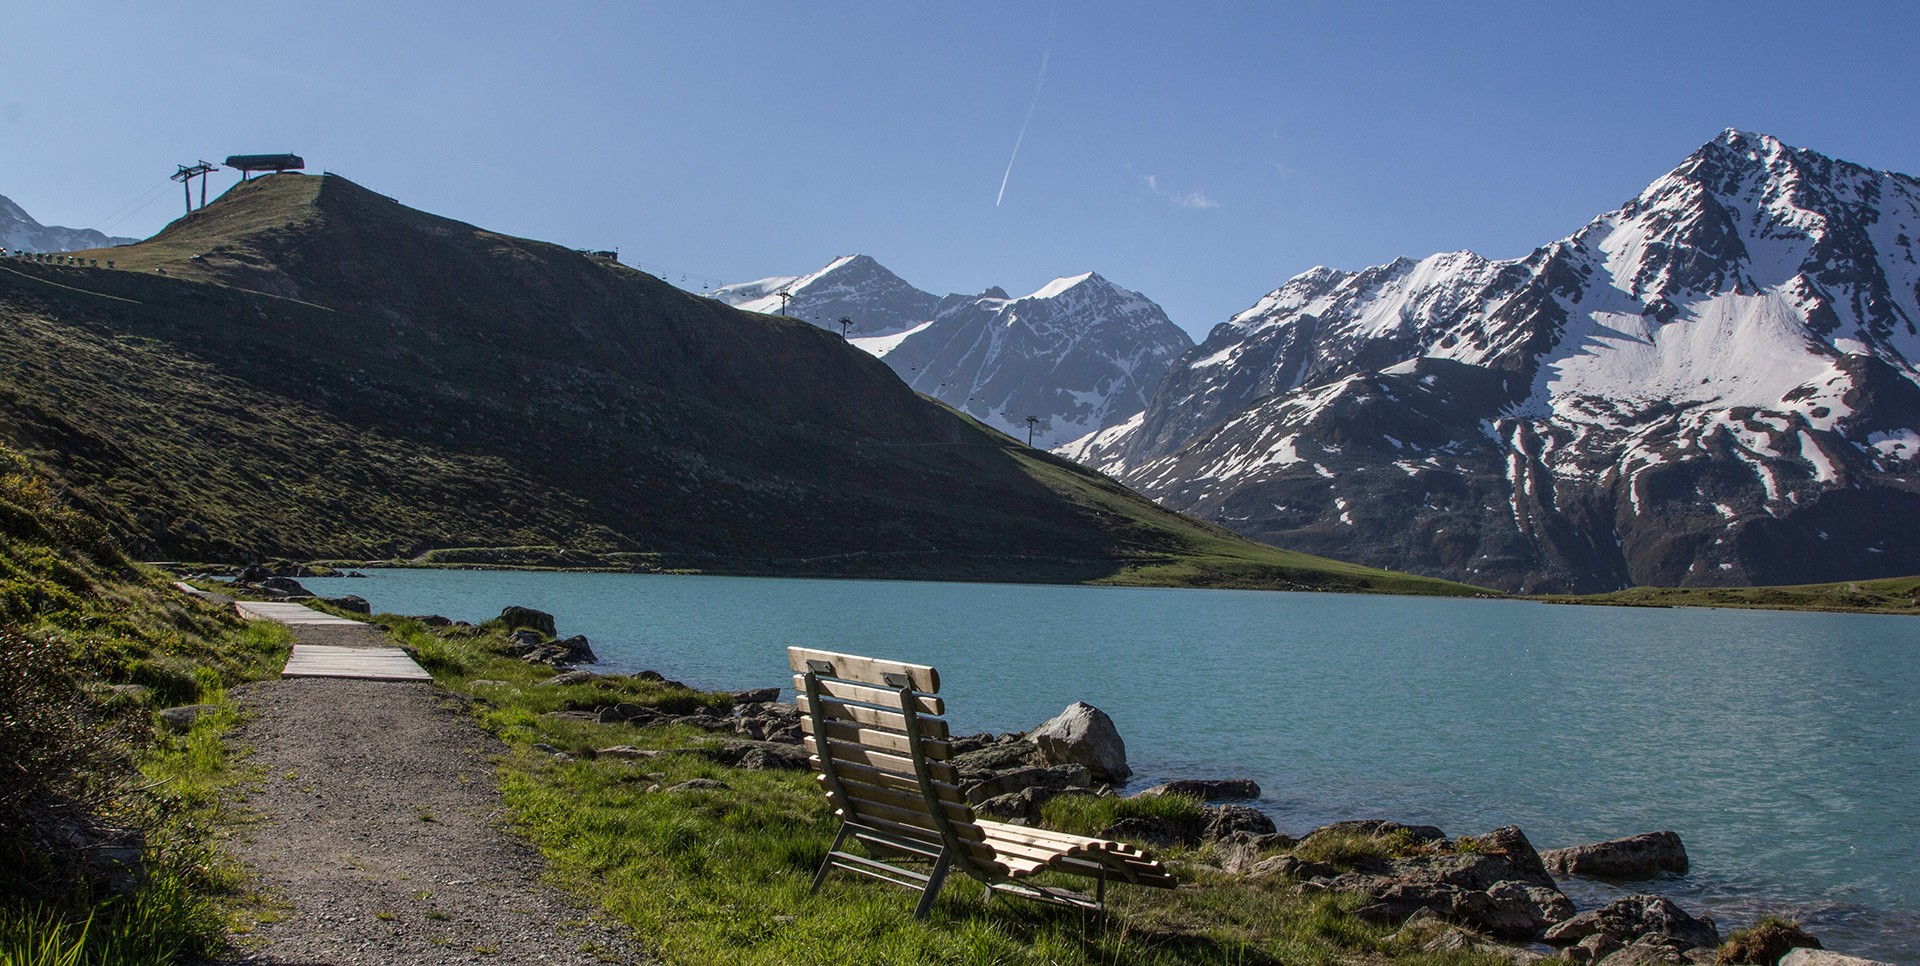 Rifflsee Lake in Pitztal